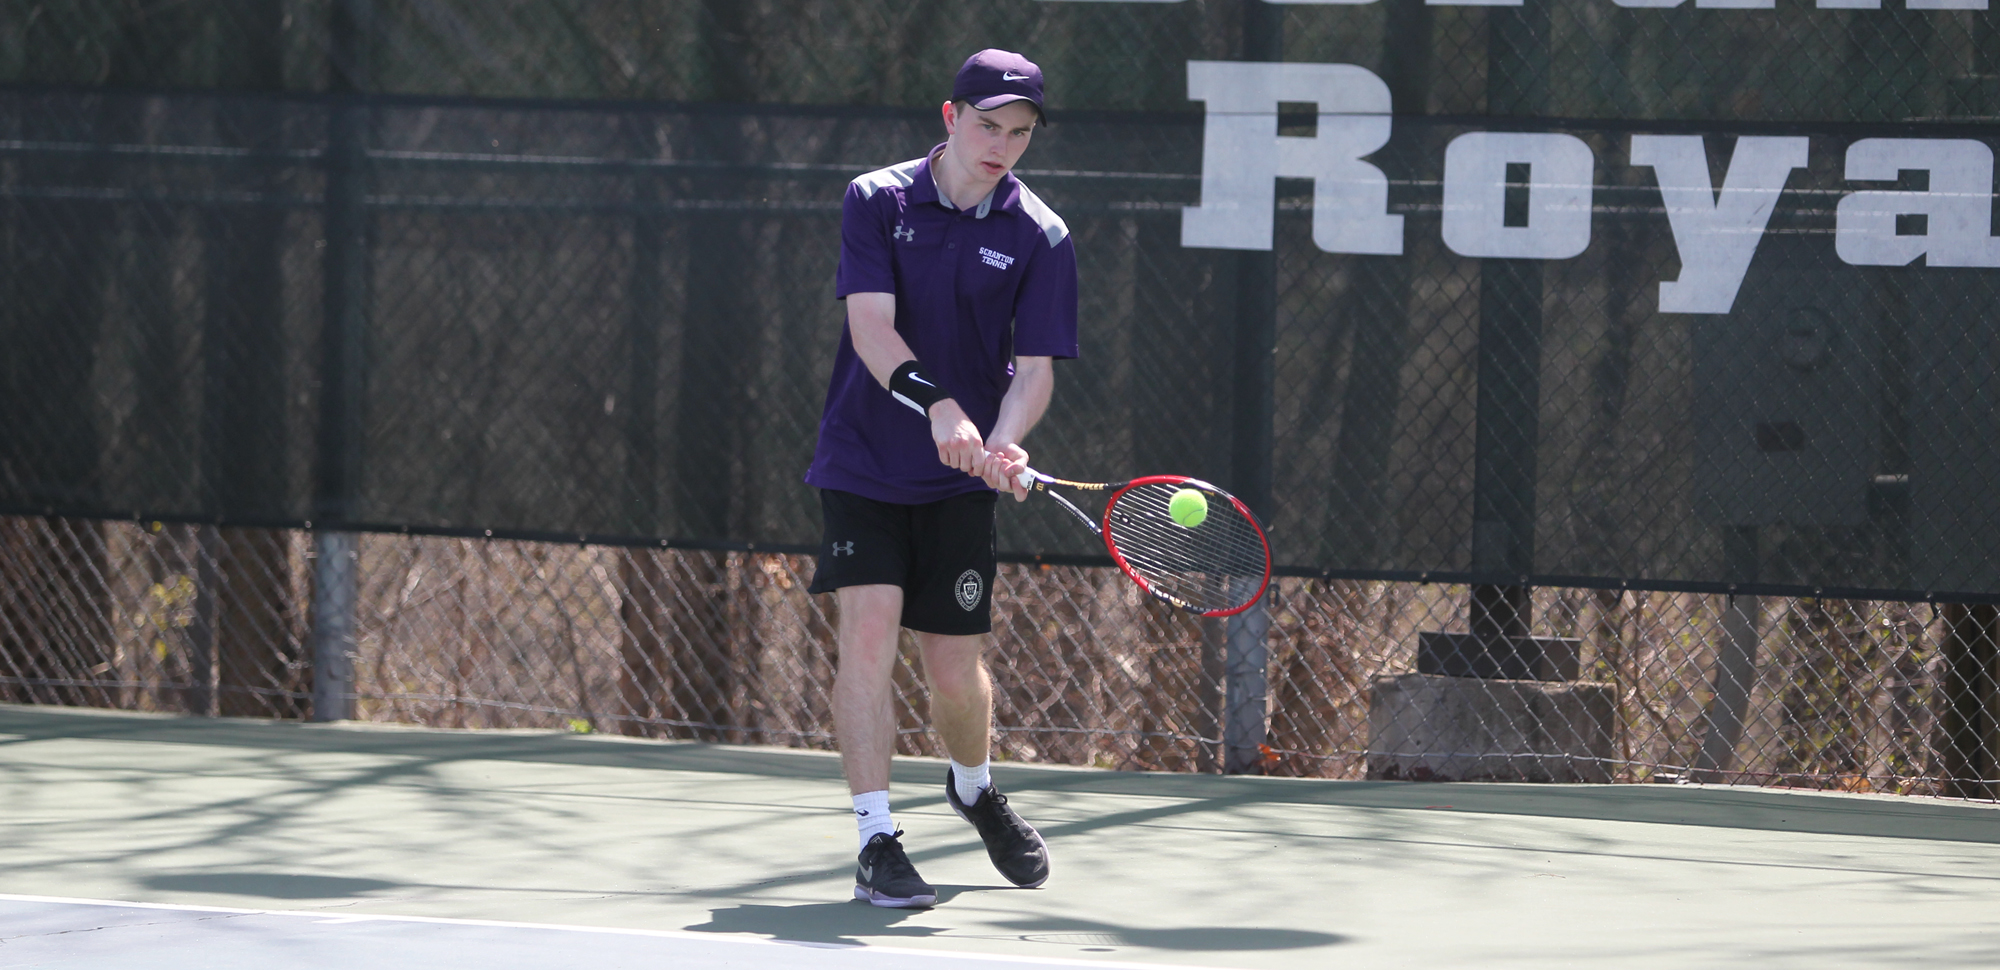 Tarquin McGurrin was honored as The University of Scranton Athlete of the Week on Monday.